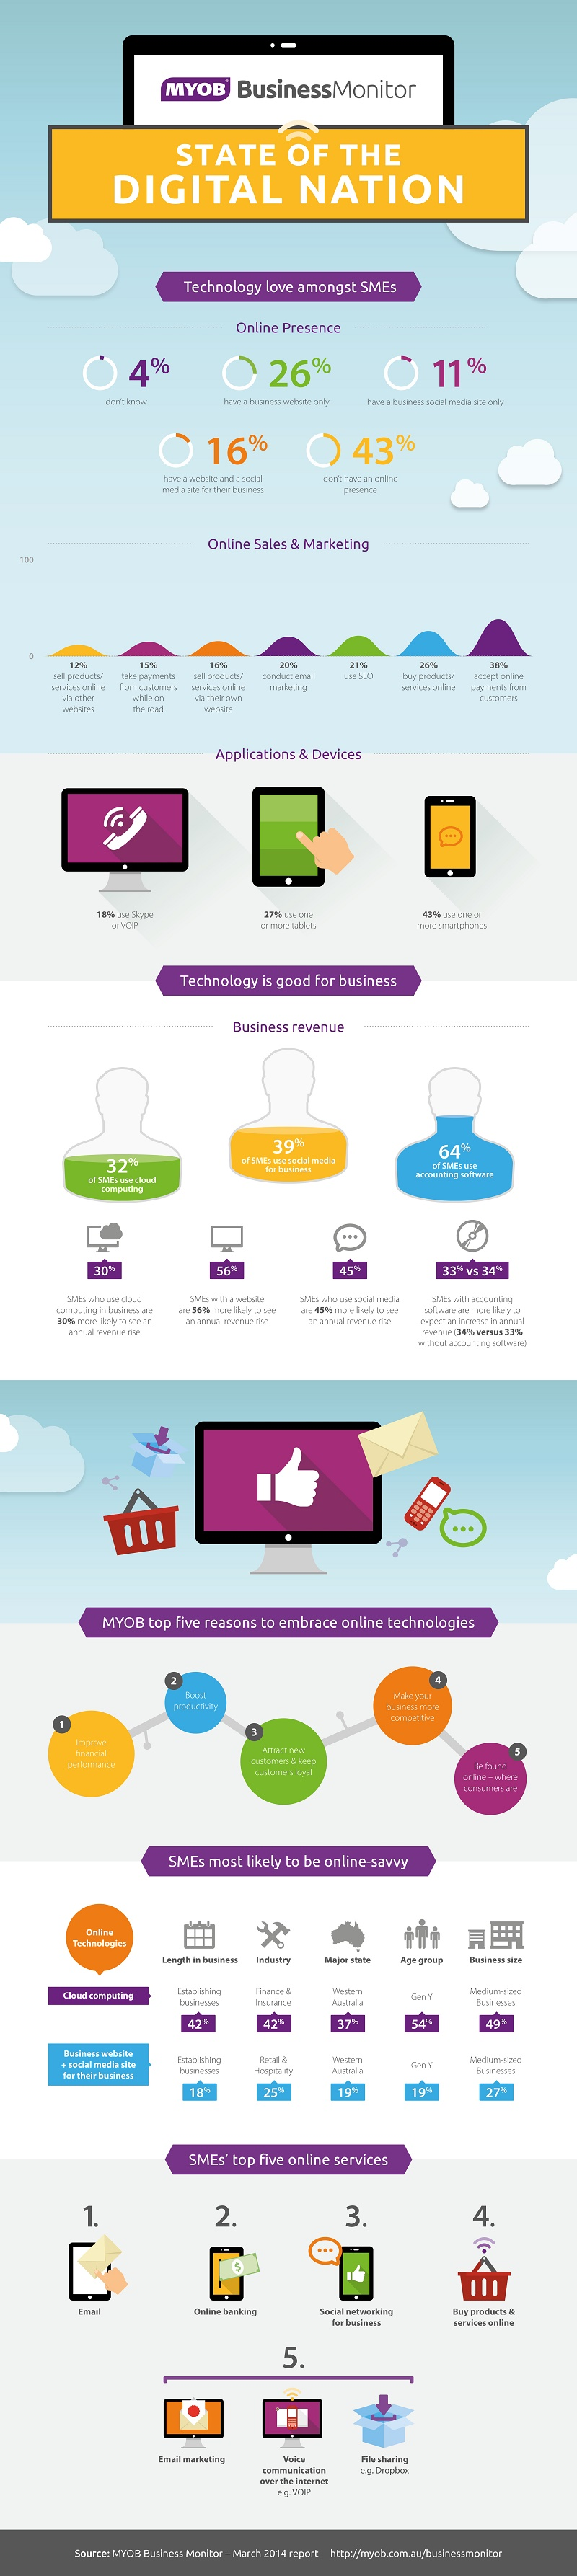 MYOB Business Monitor Digital Nation Infographic-page-